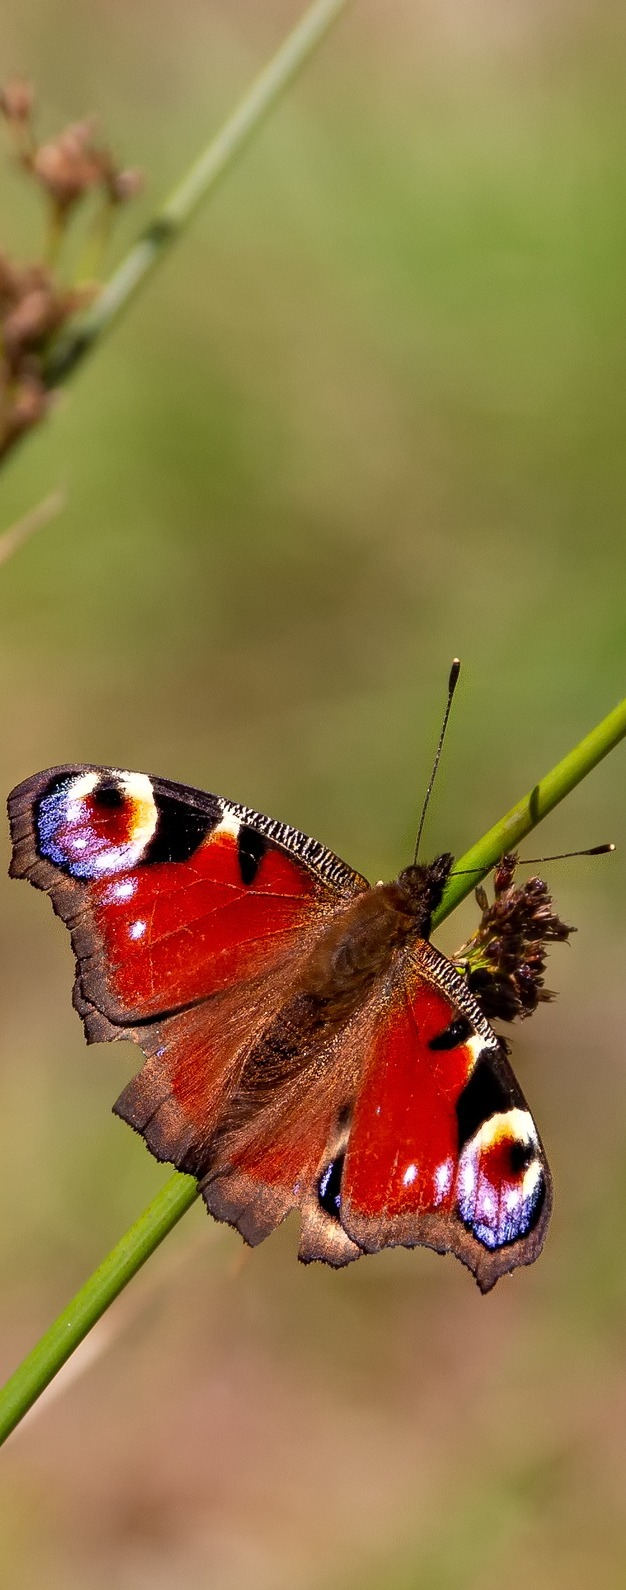 A peacock butterfly on a reed.